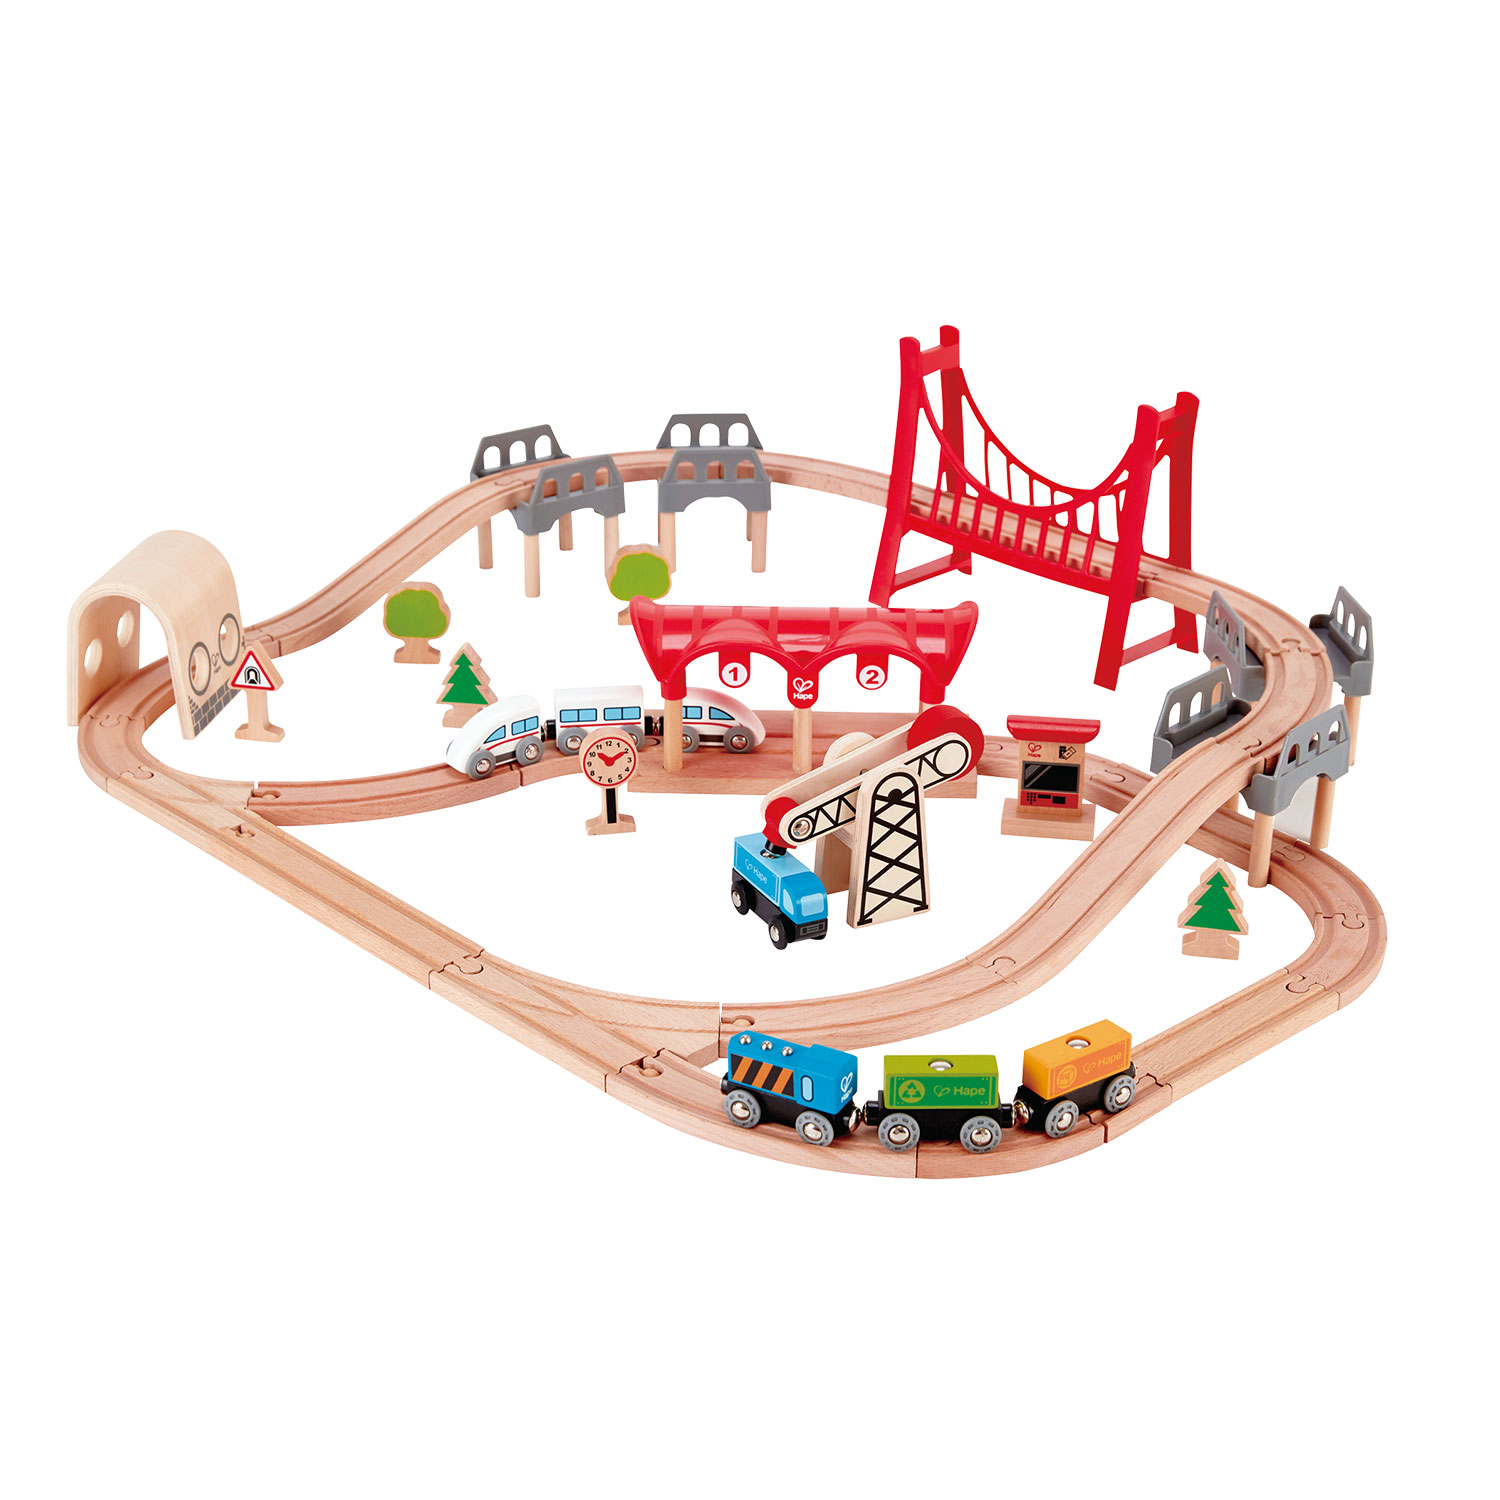 Hape Treinset Double Loop